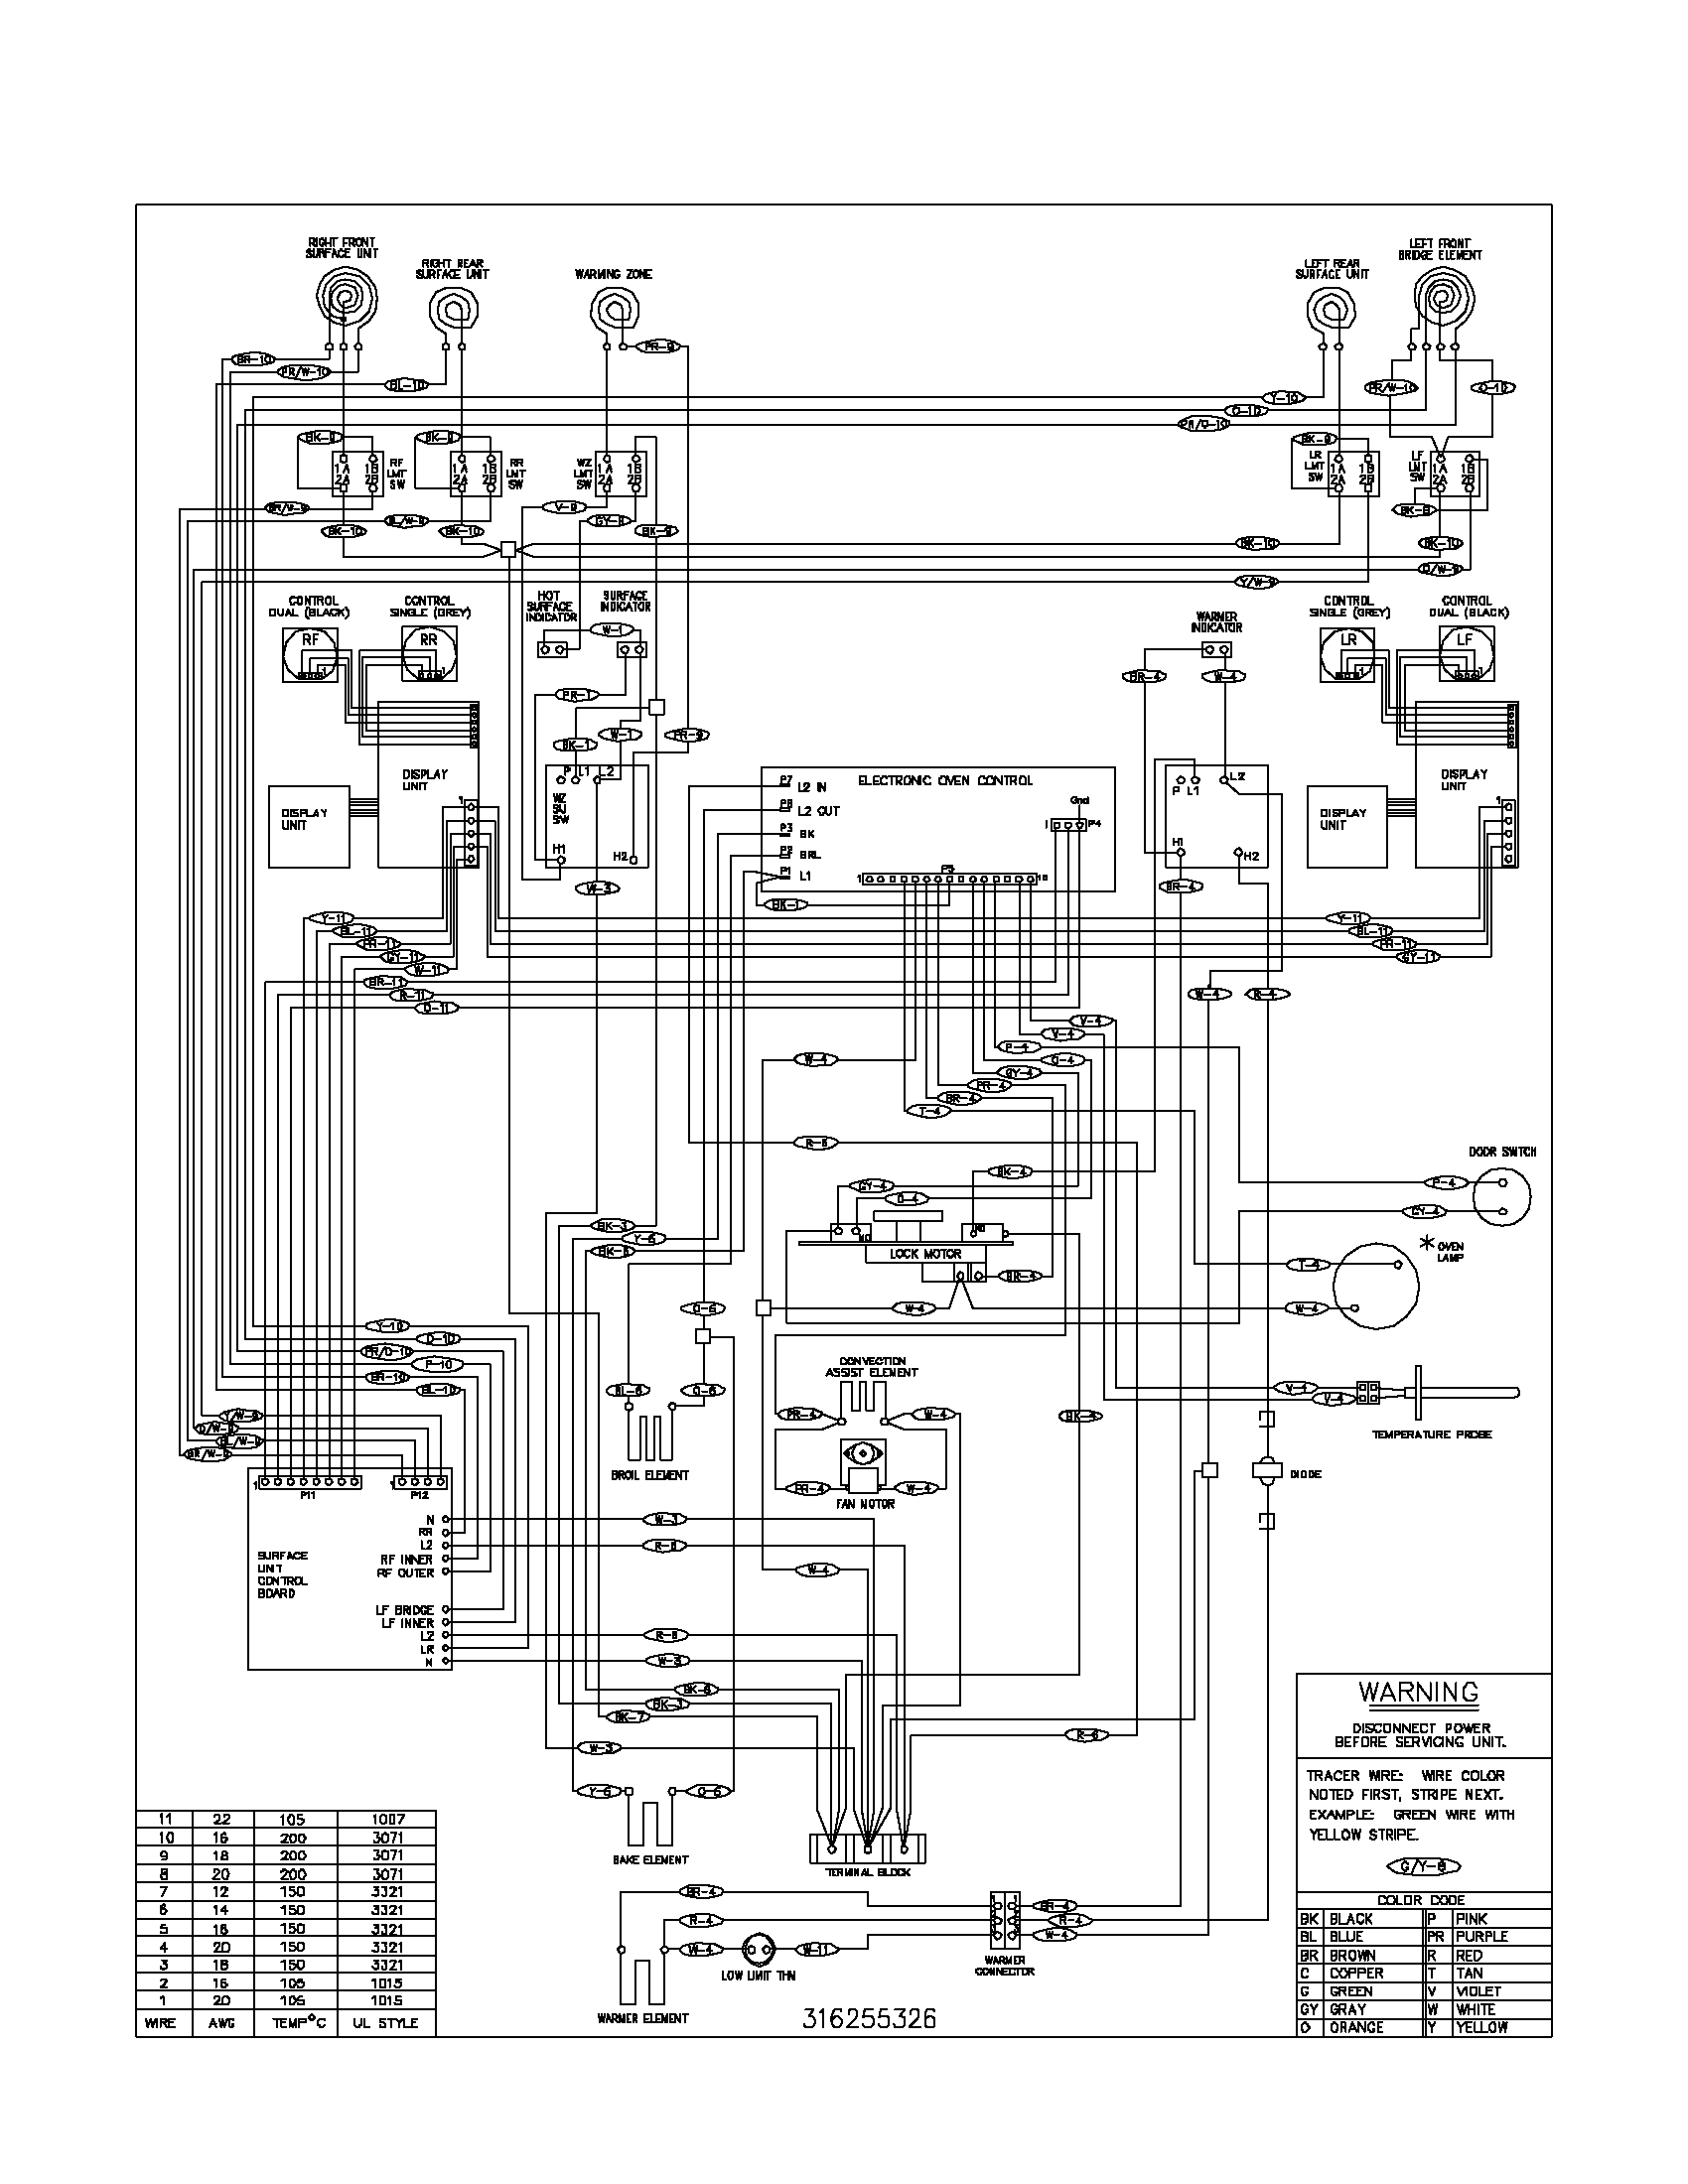 Frigidaire Range Wiring Diagrams - Wiring Diagram K3 on